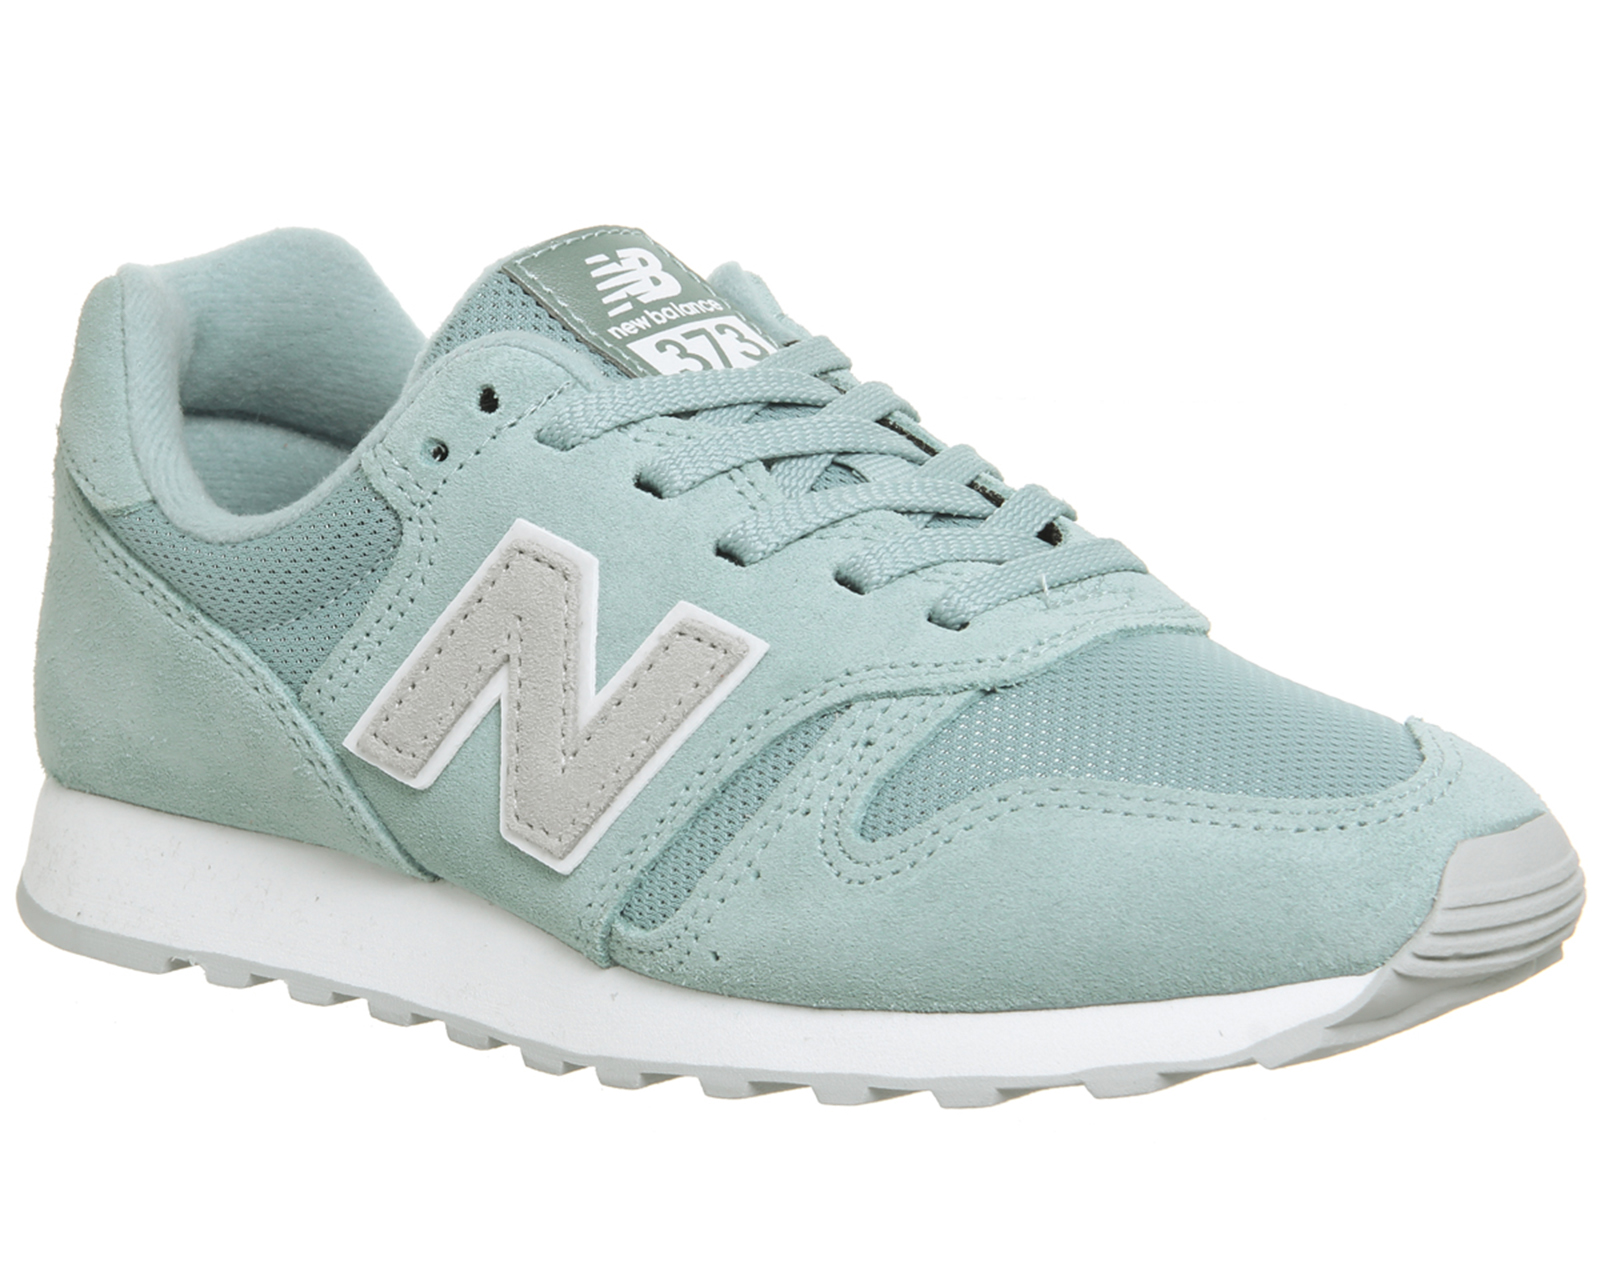 02ad07233fc Sentinel Womens New Balance 373 Trainers Storm Blue Trainers Shoes